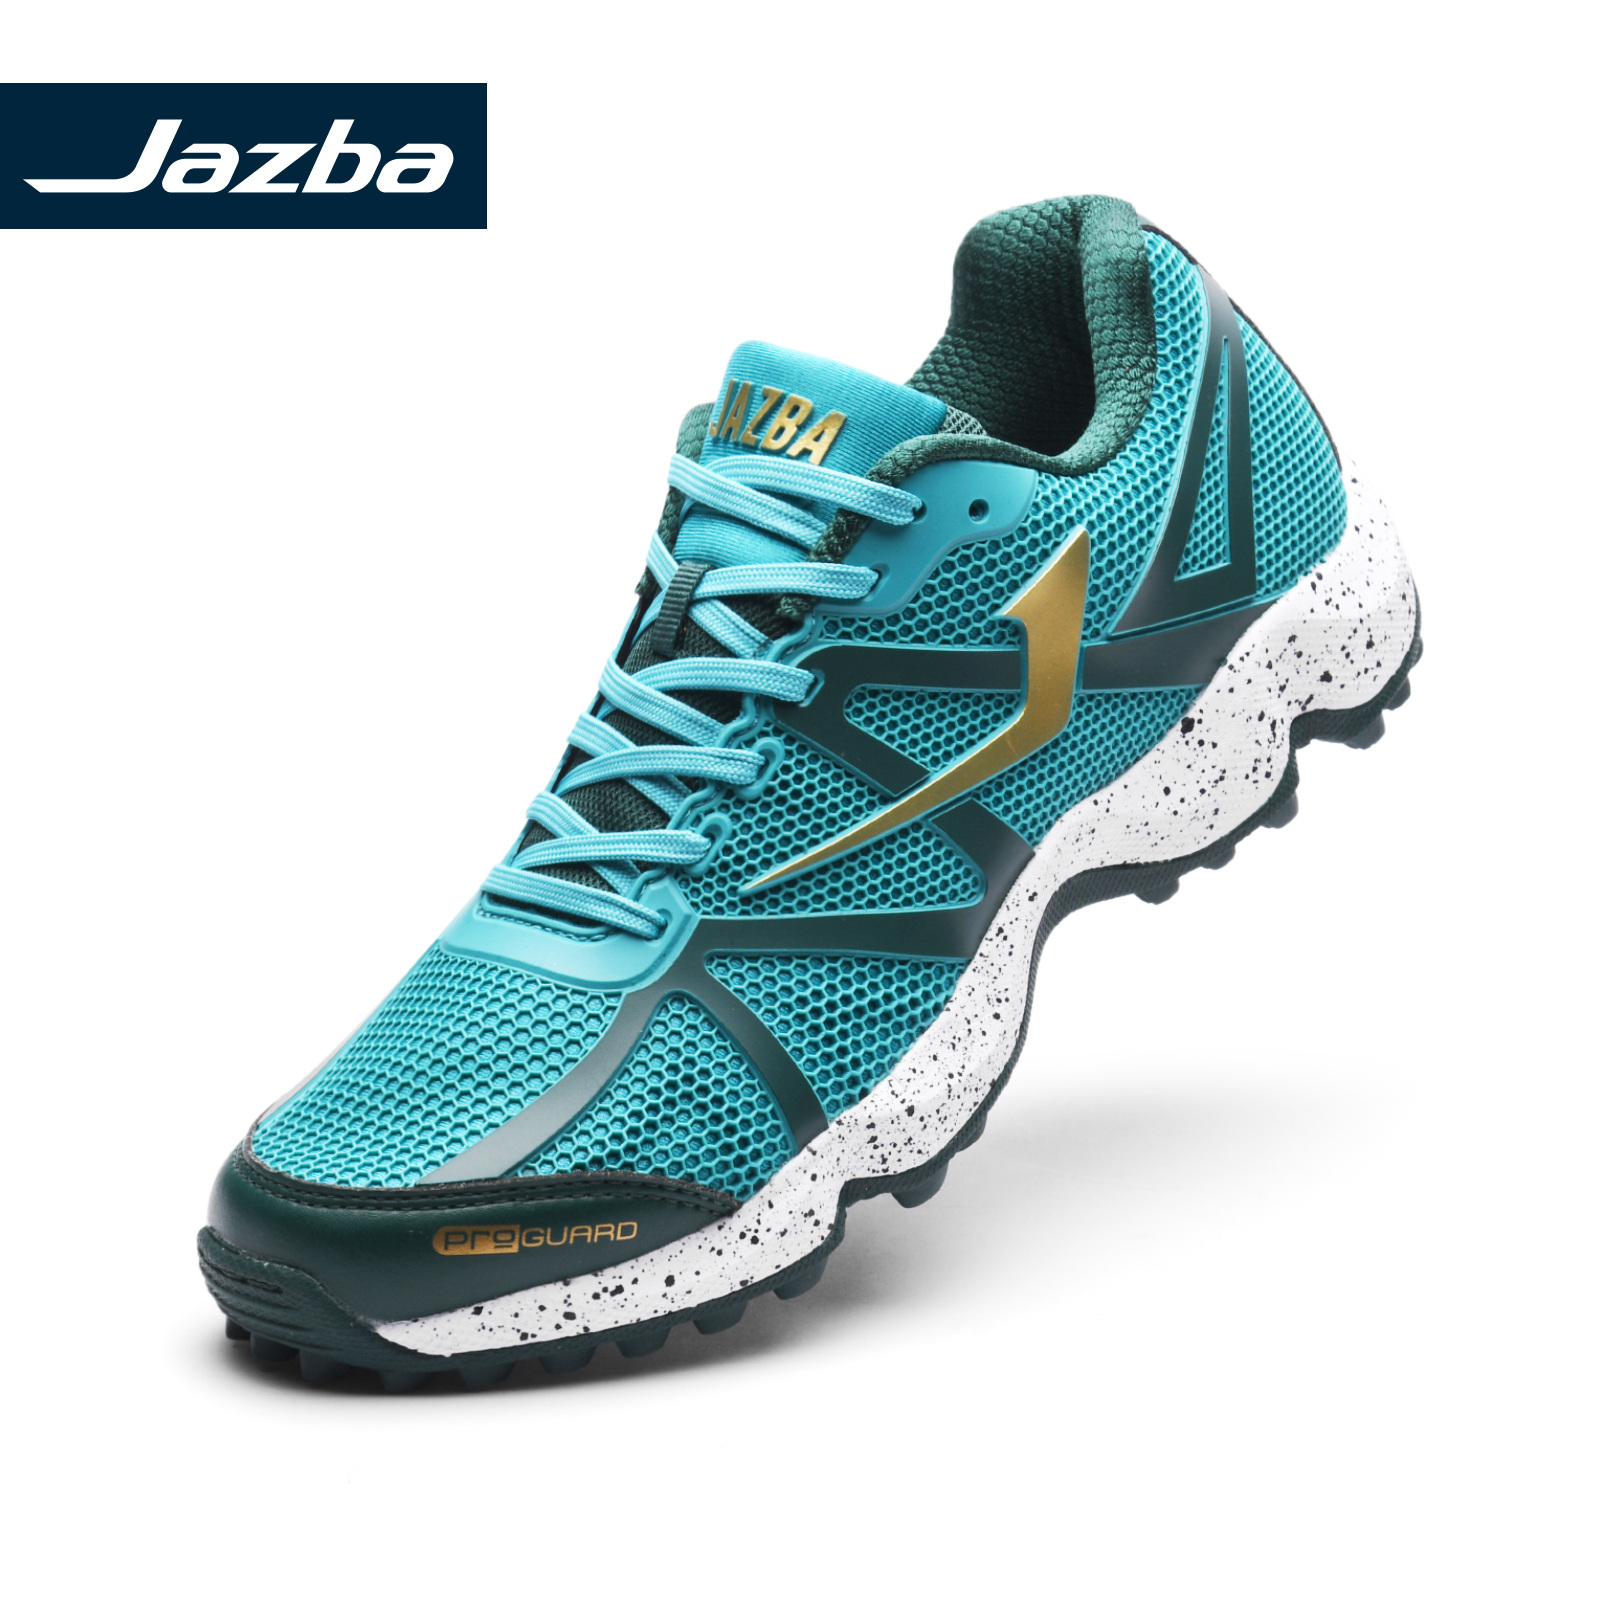 JAZBA RATTLER 2.1 Mens Field Hockey Shoes Professional Training Rubber Cleats Boots TEAL GOLD GO Outdoor Sports Sneakers